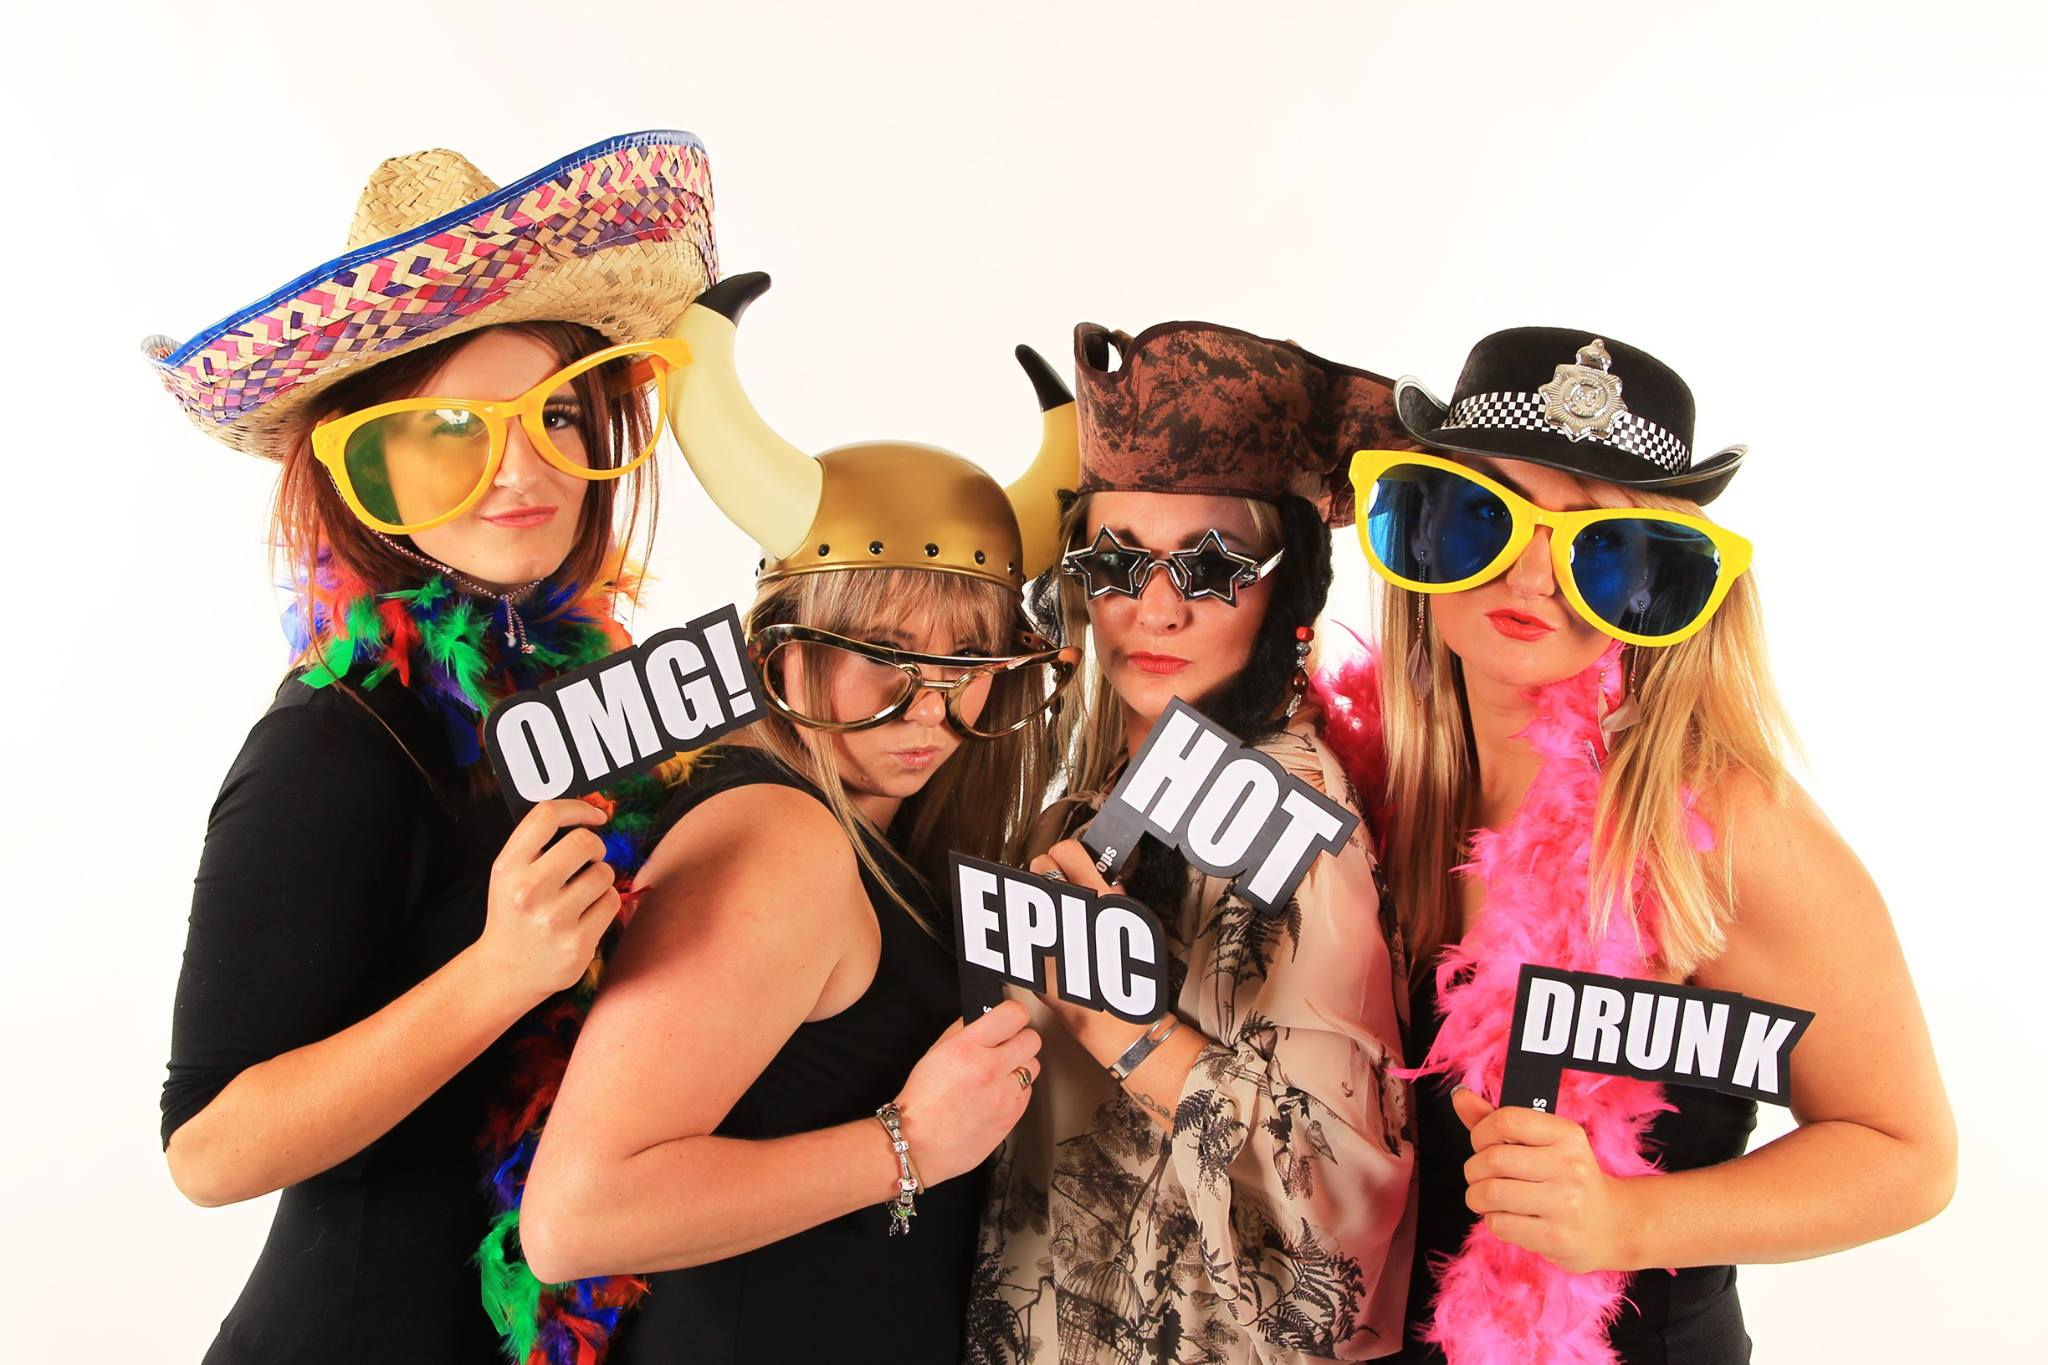 Make your event fun and unforgettable!